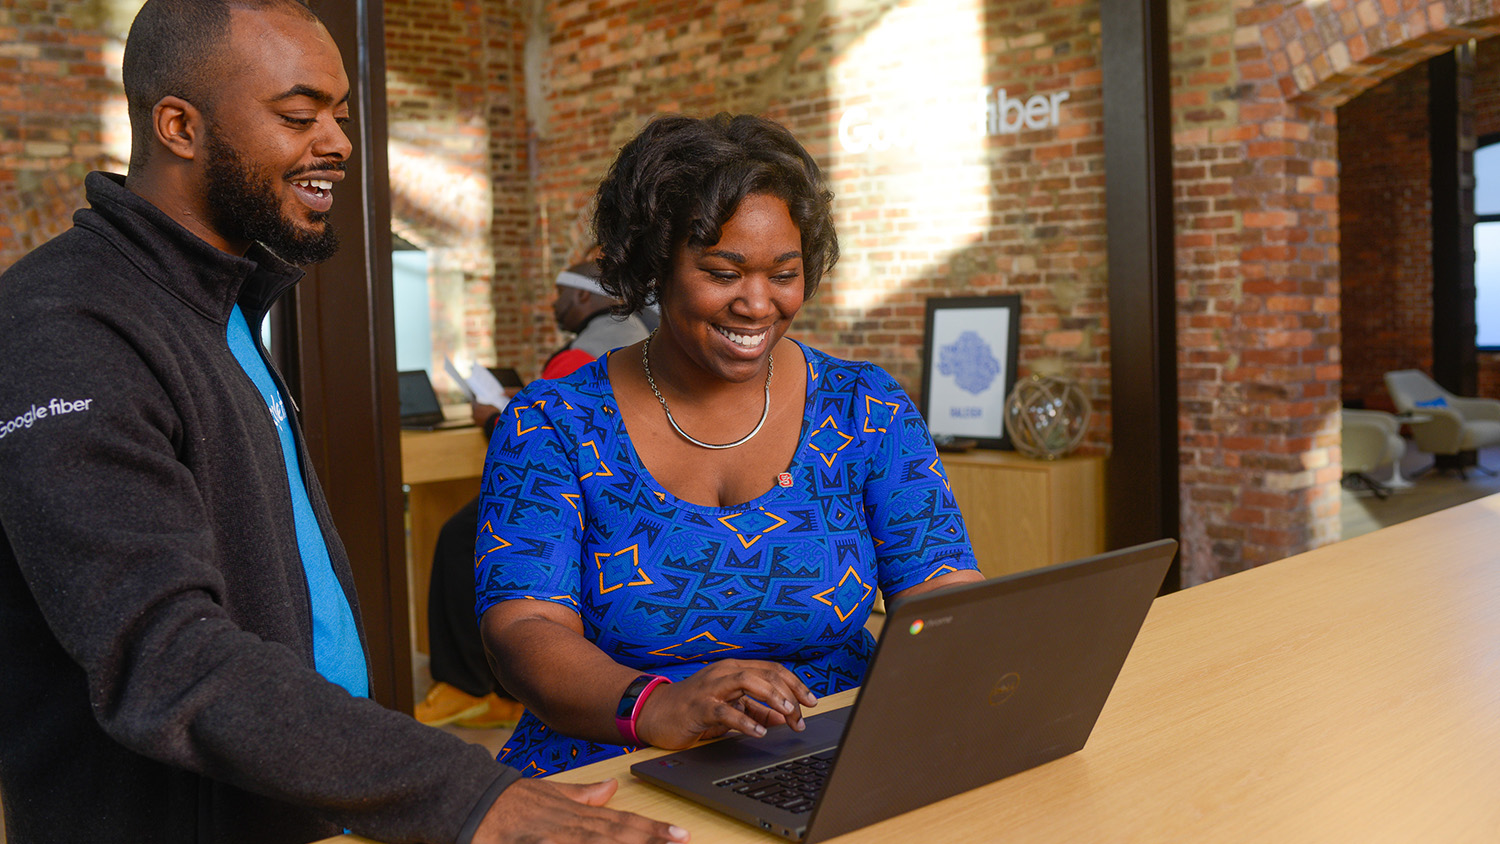 Two people smile while looking at a laptop